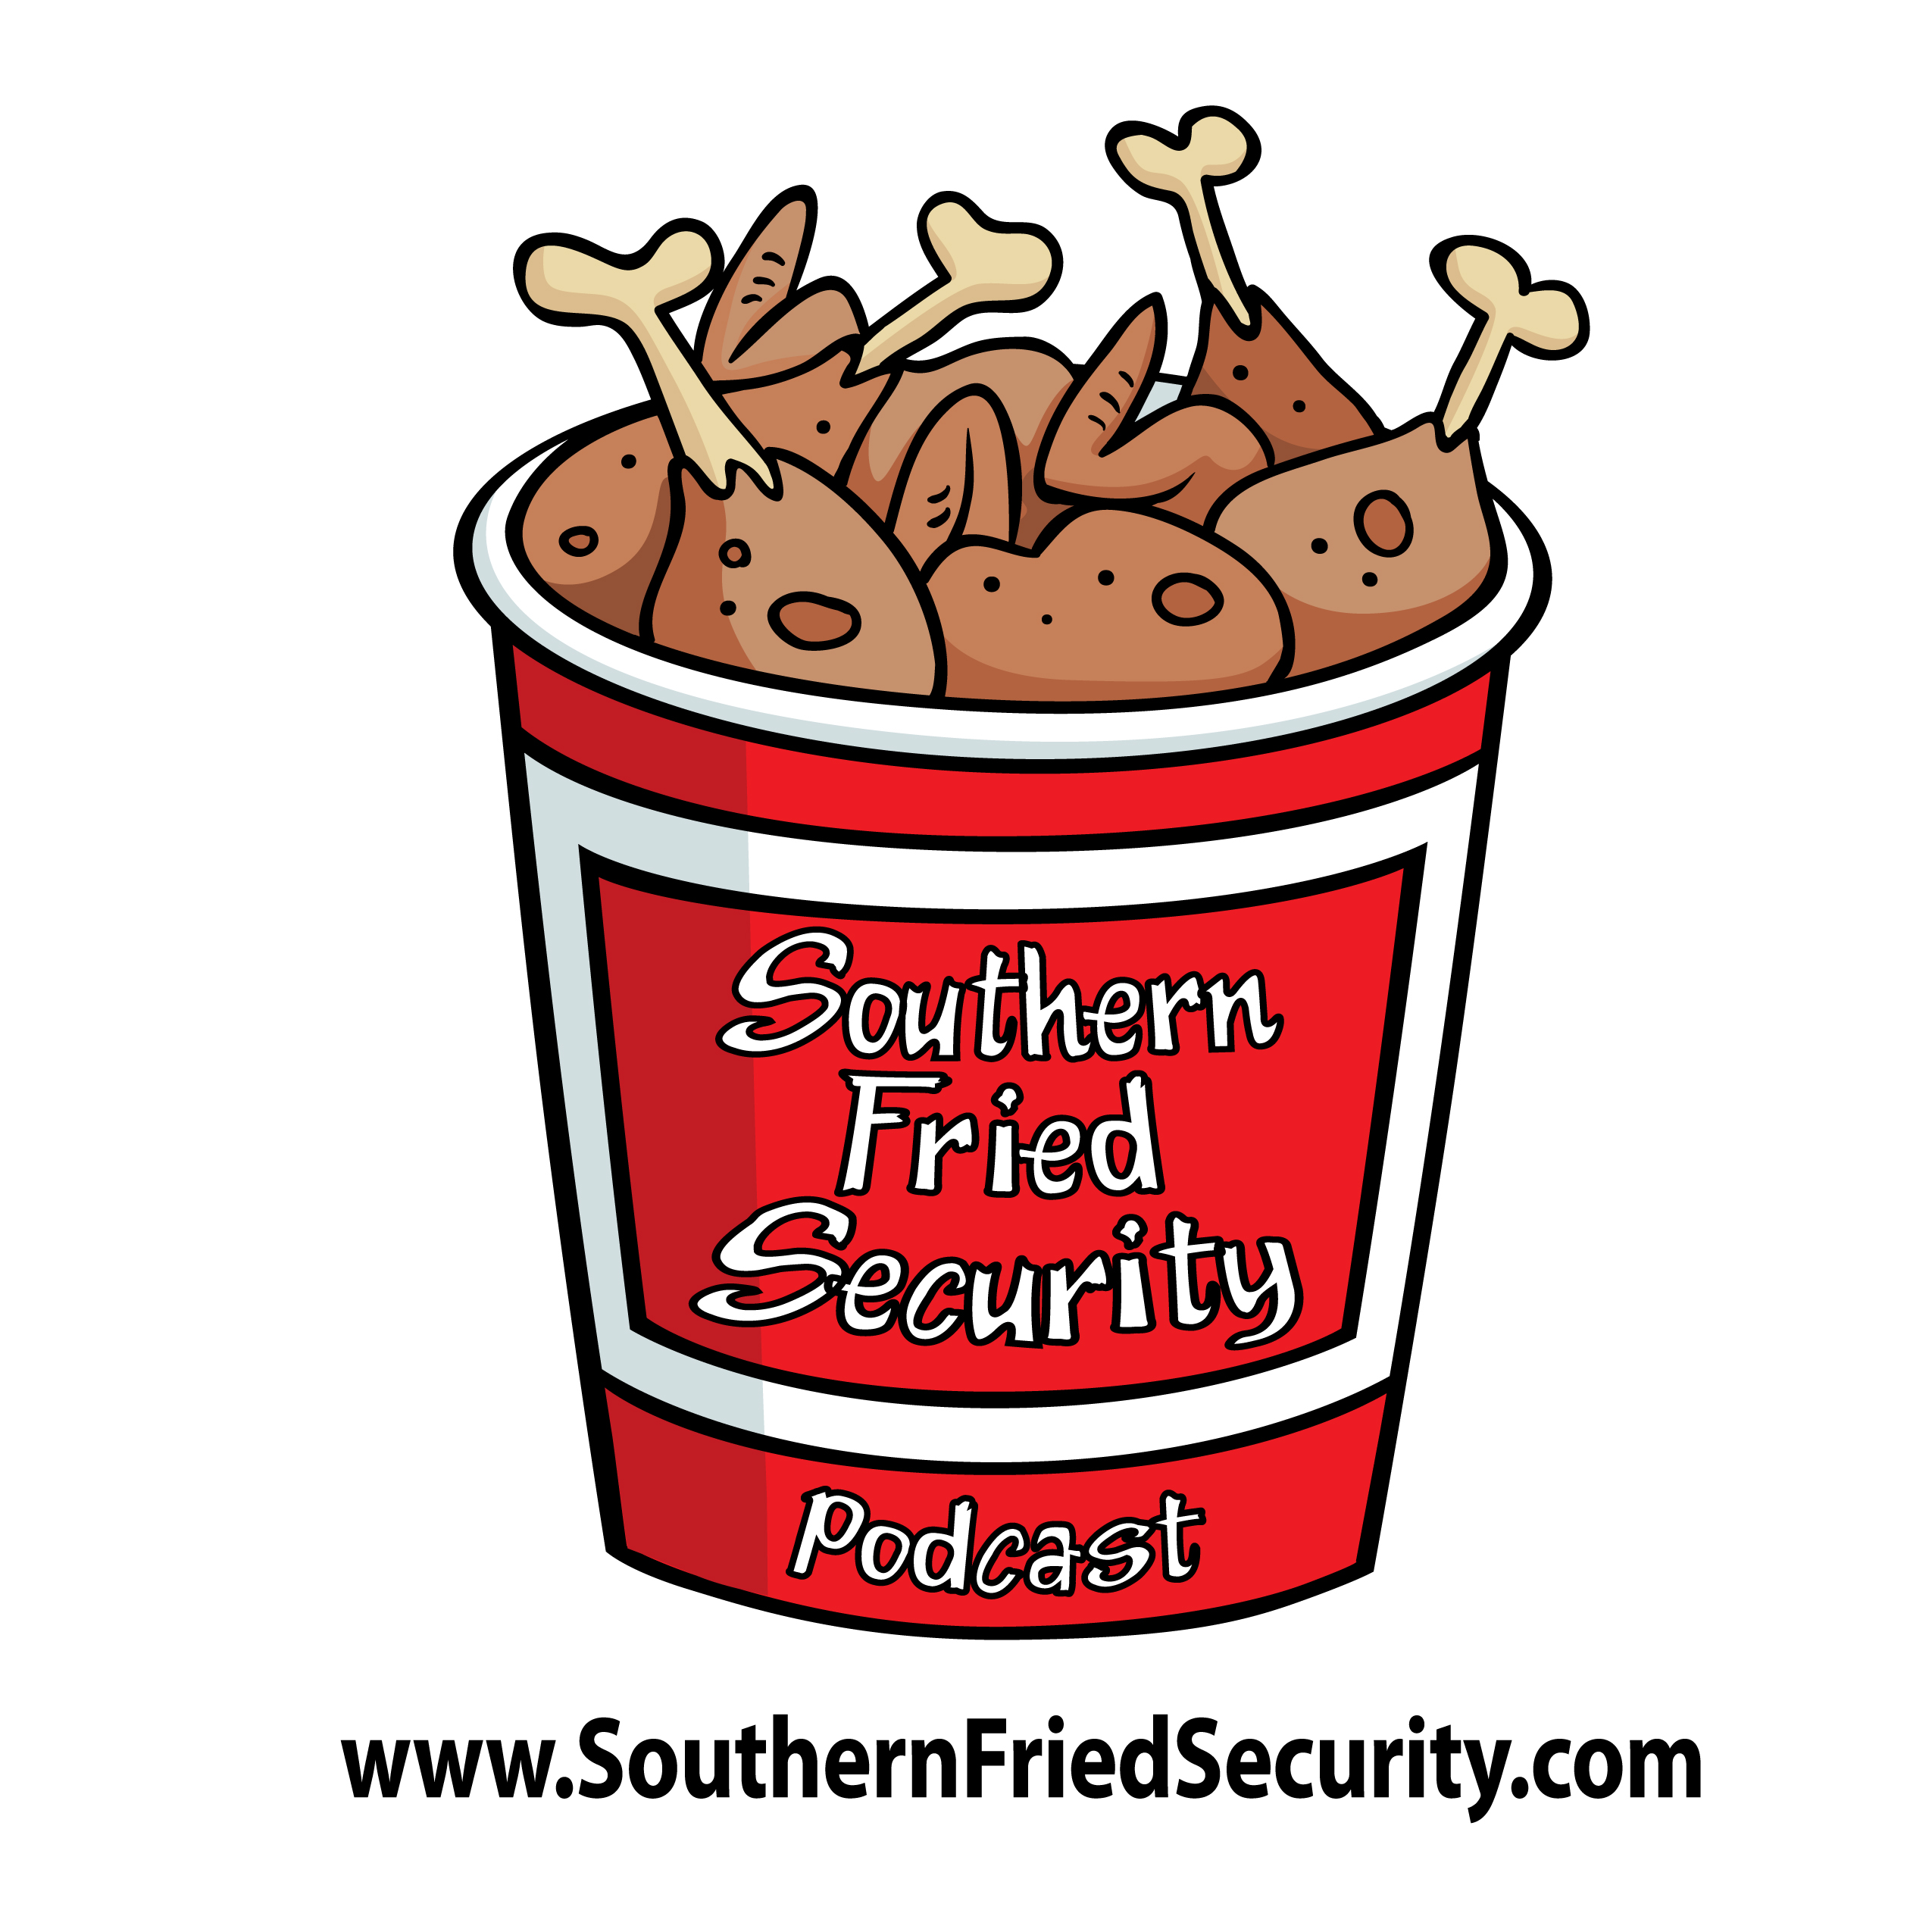 The Southern Fried Security Podcast show art